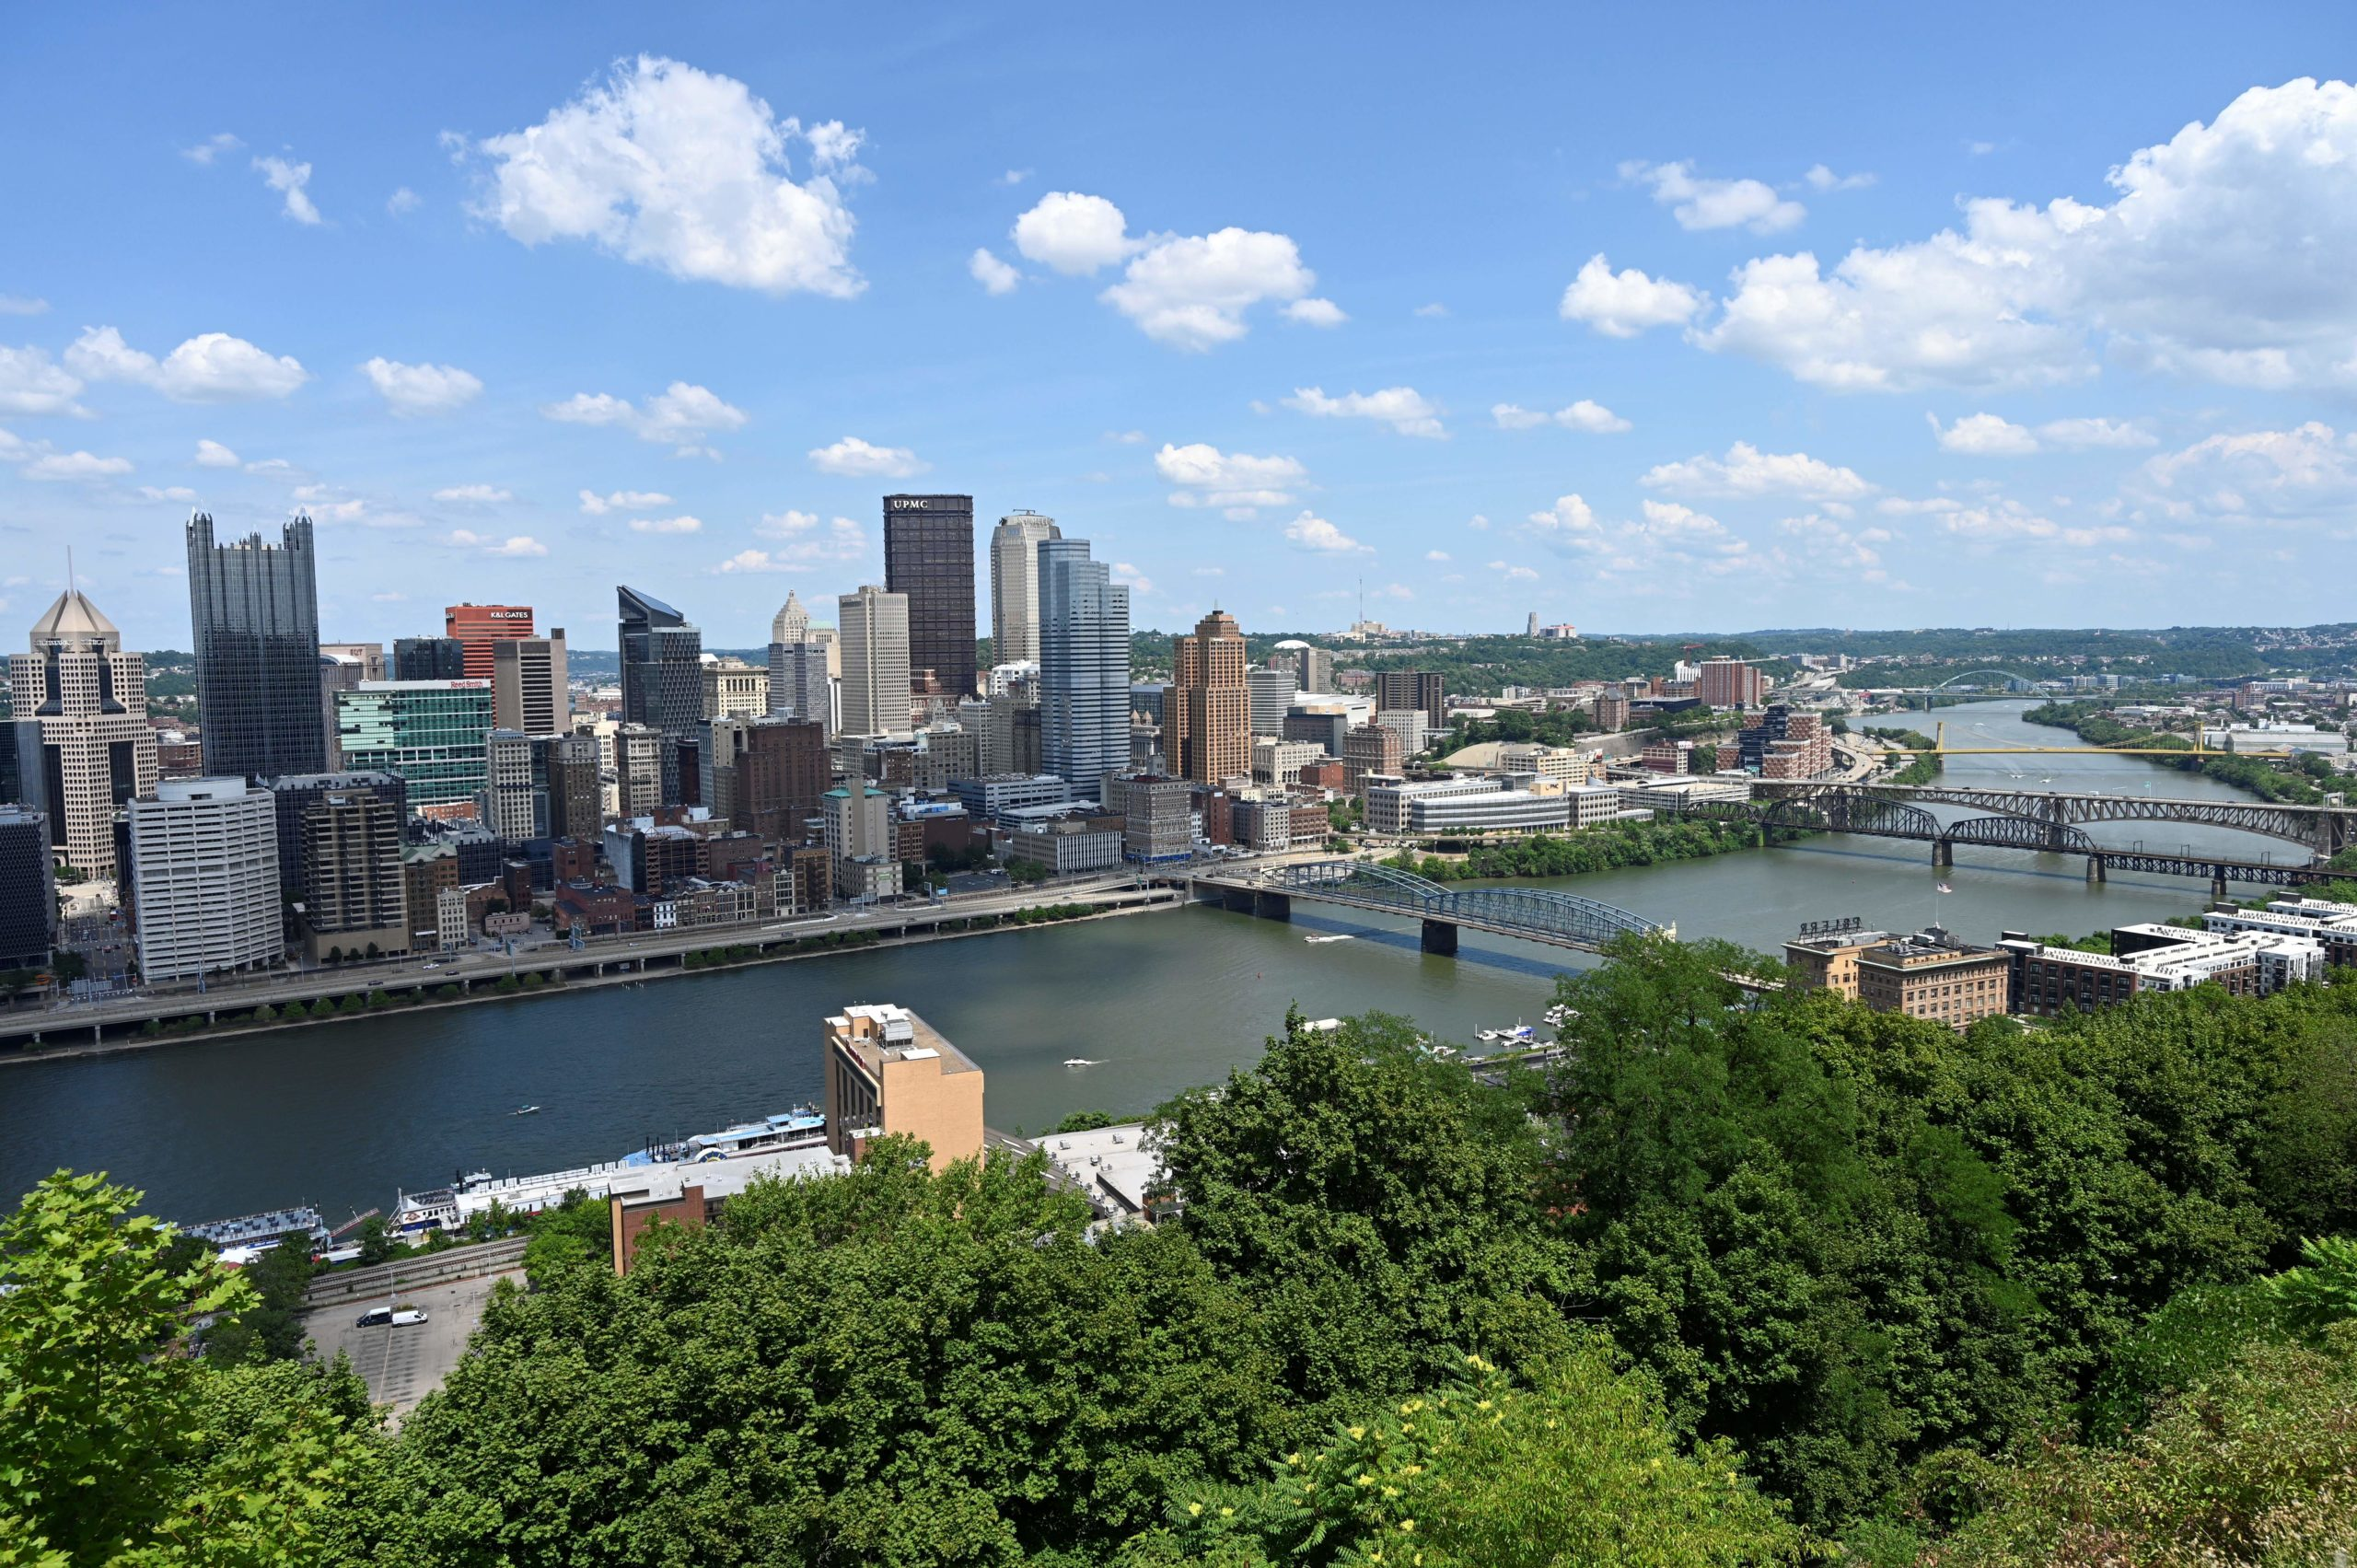 Downtown Pittsburgh, Pennsylvania is pictured on July 25, 2020. (Photo by DANIEL SLIM/AFP via Getty Images)